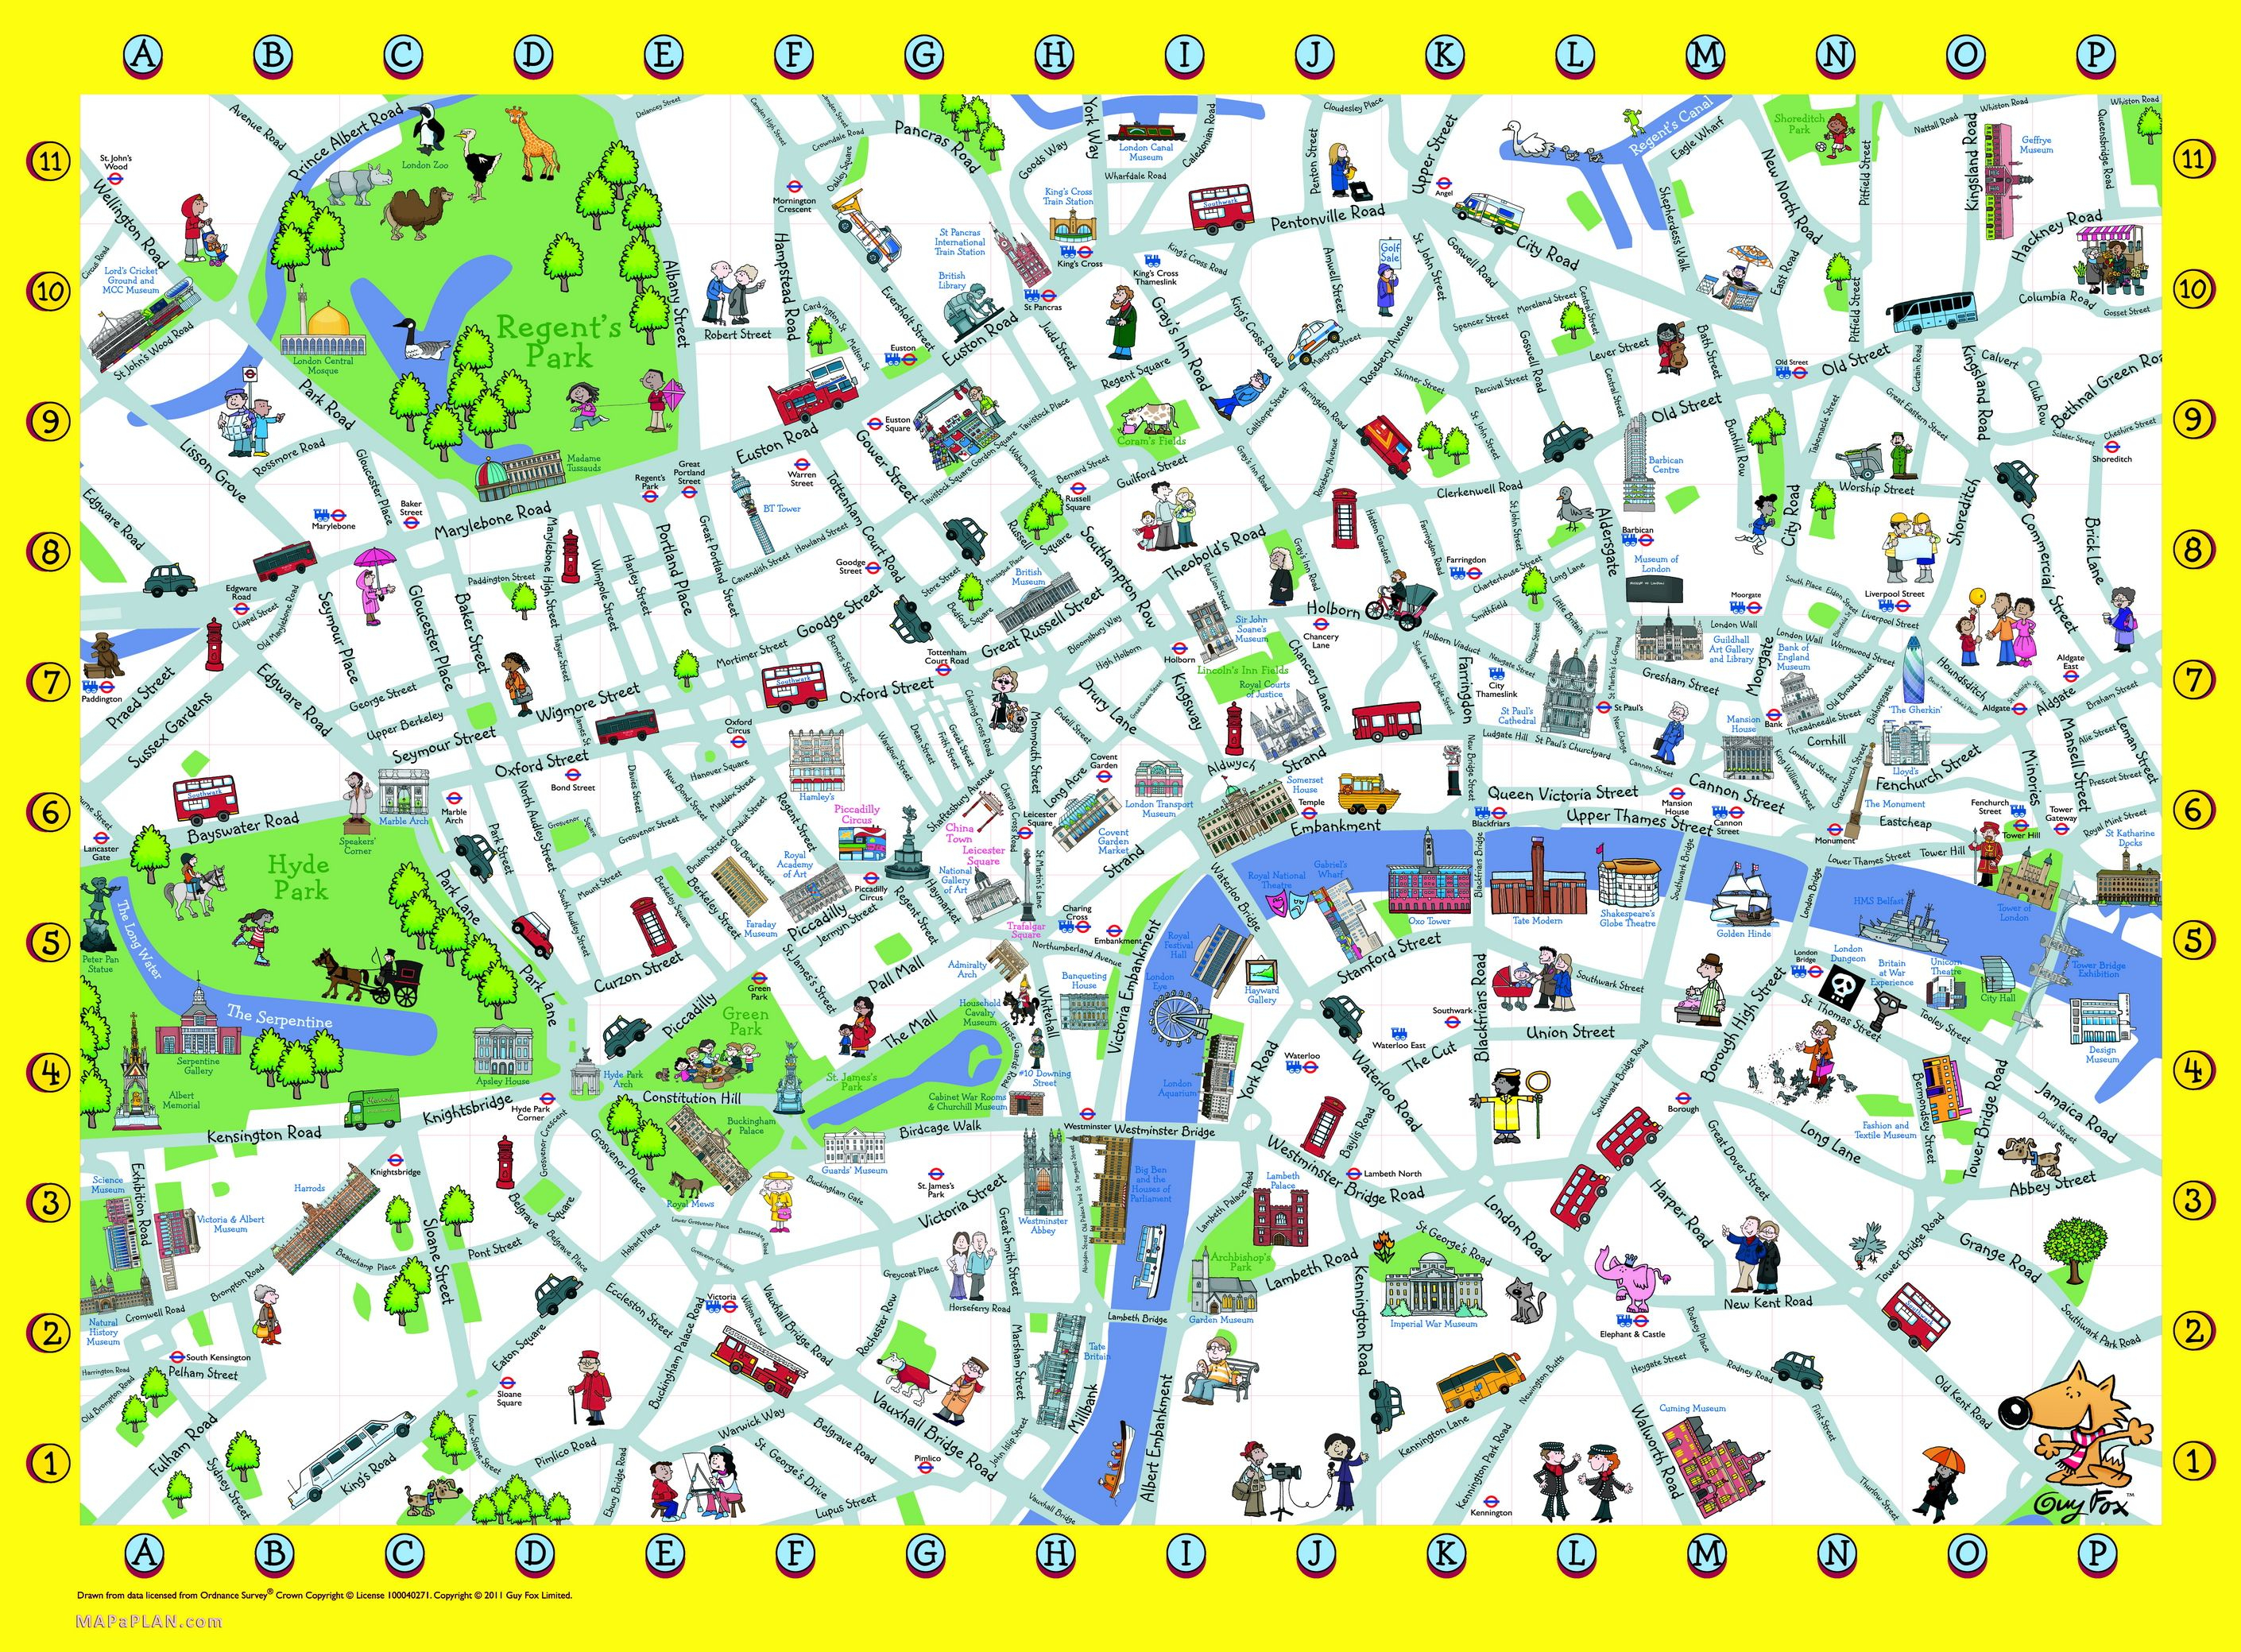 London Detailed Landmark Map | London Maps - Top Tourist Attractions - Printable Map Of London England